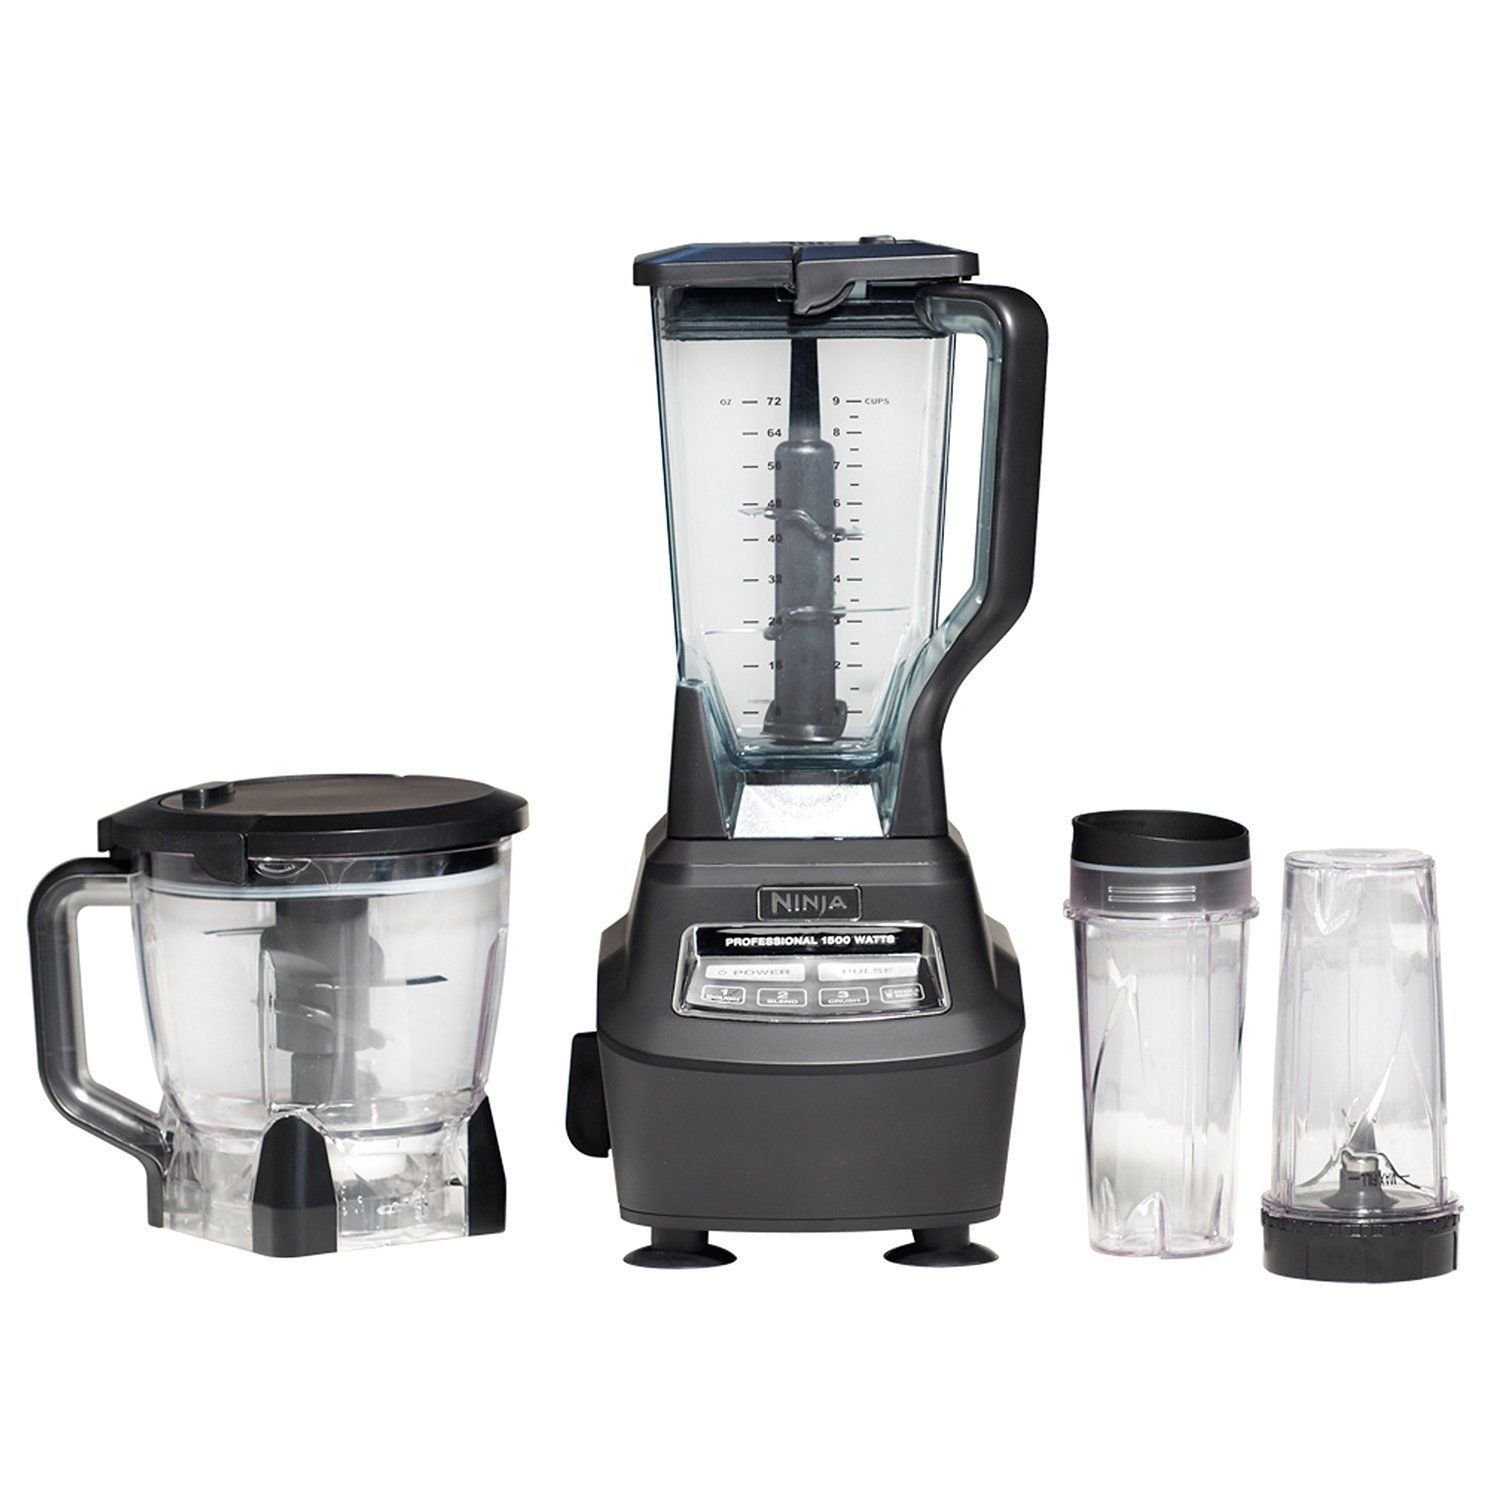 ninja complete kitchen system mid century modern design bl770 food processors and prep new